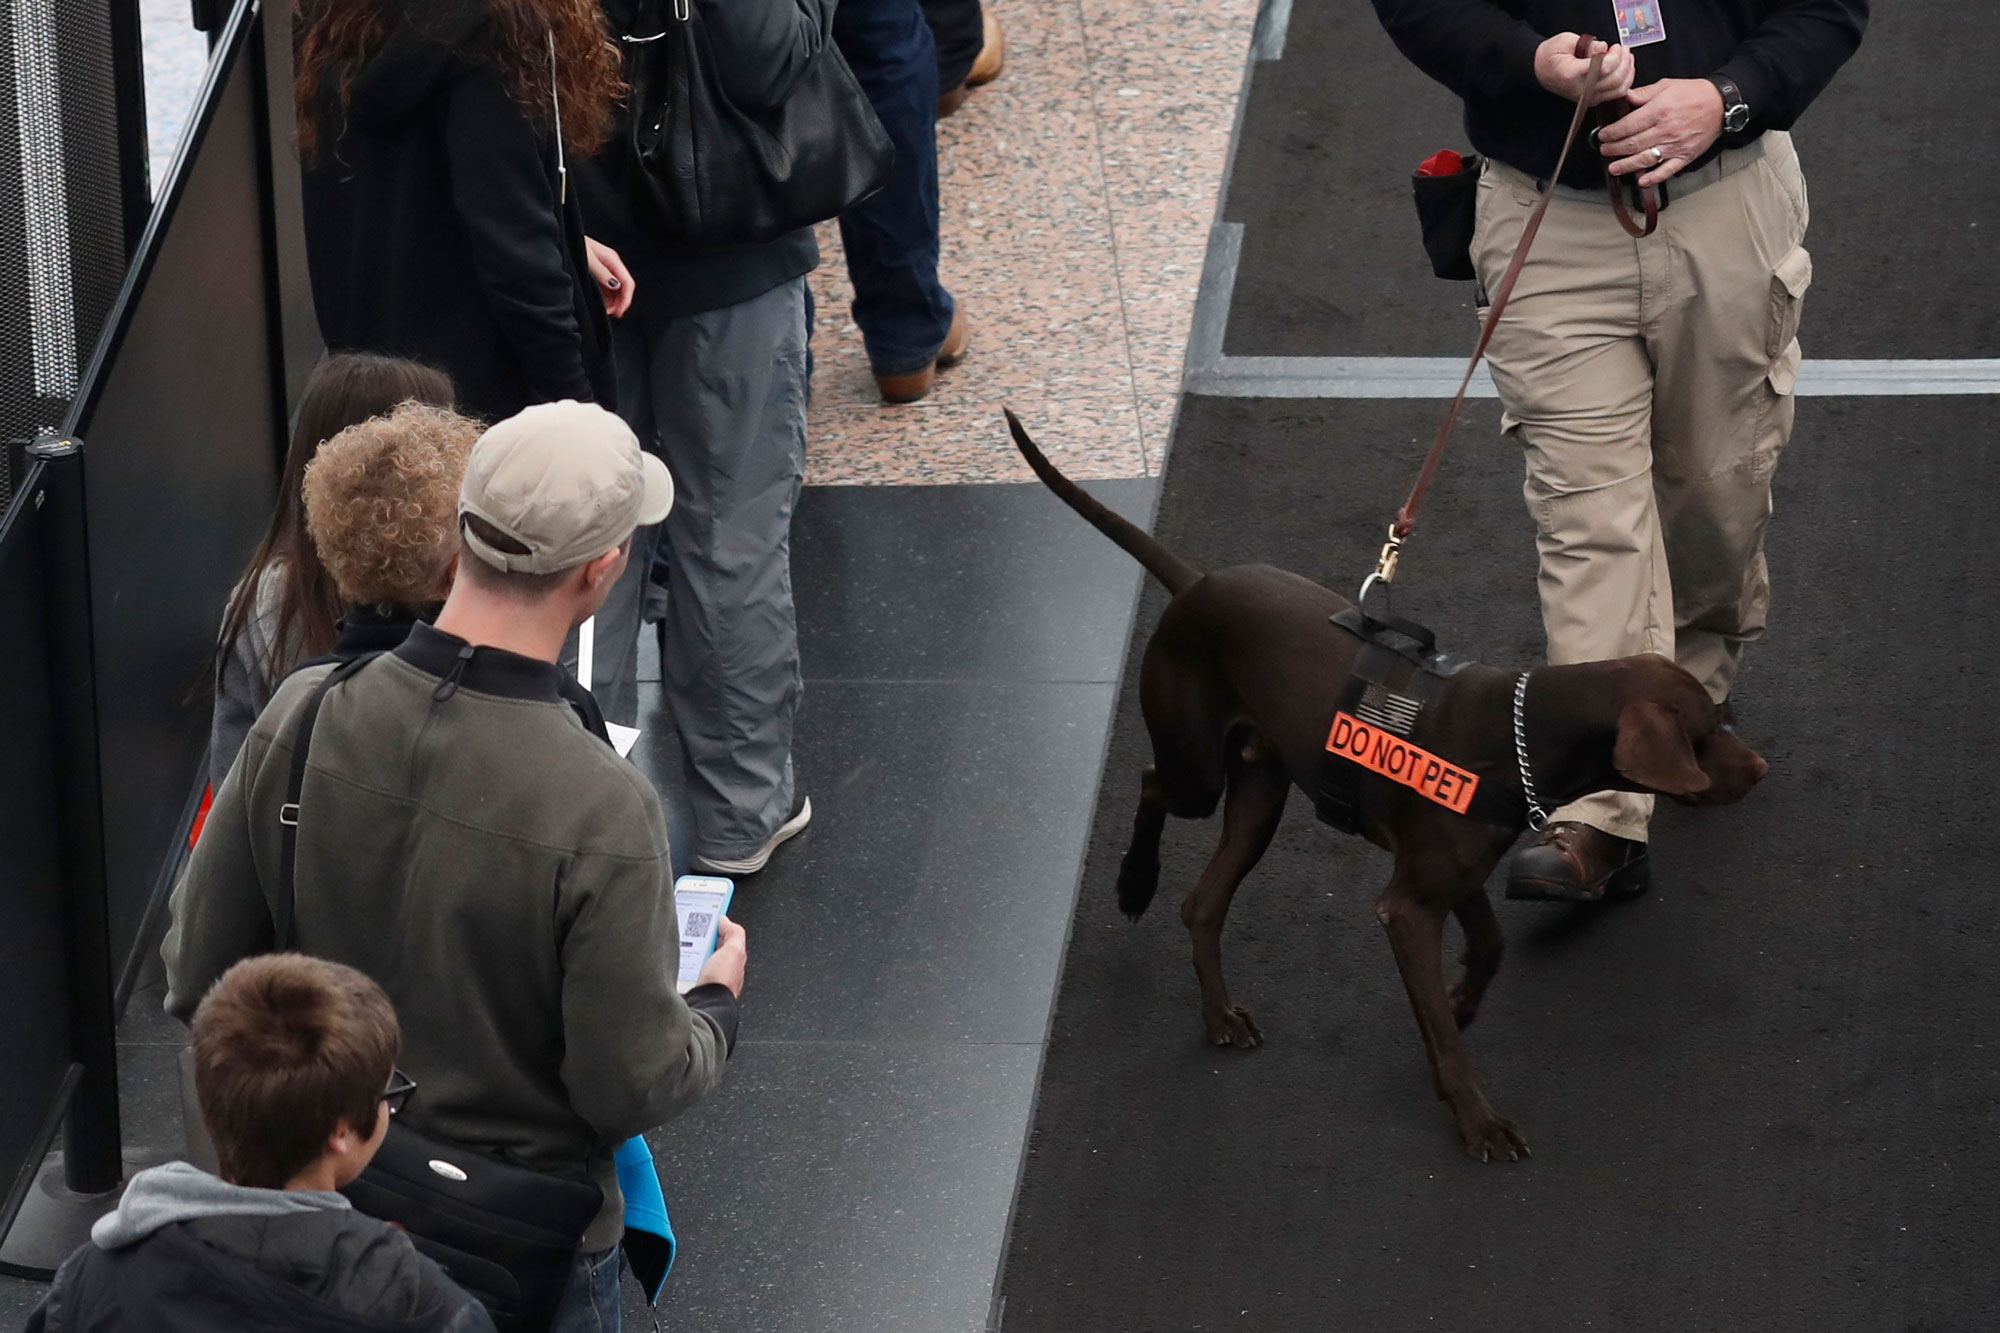 A security officer guides his dog along a long line of travelers waiting at a checkpoint in Denver International Airport early Wednesday, Nov. 23, 2016, in Denver.